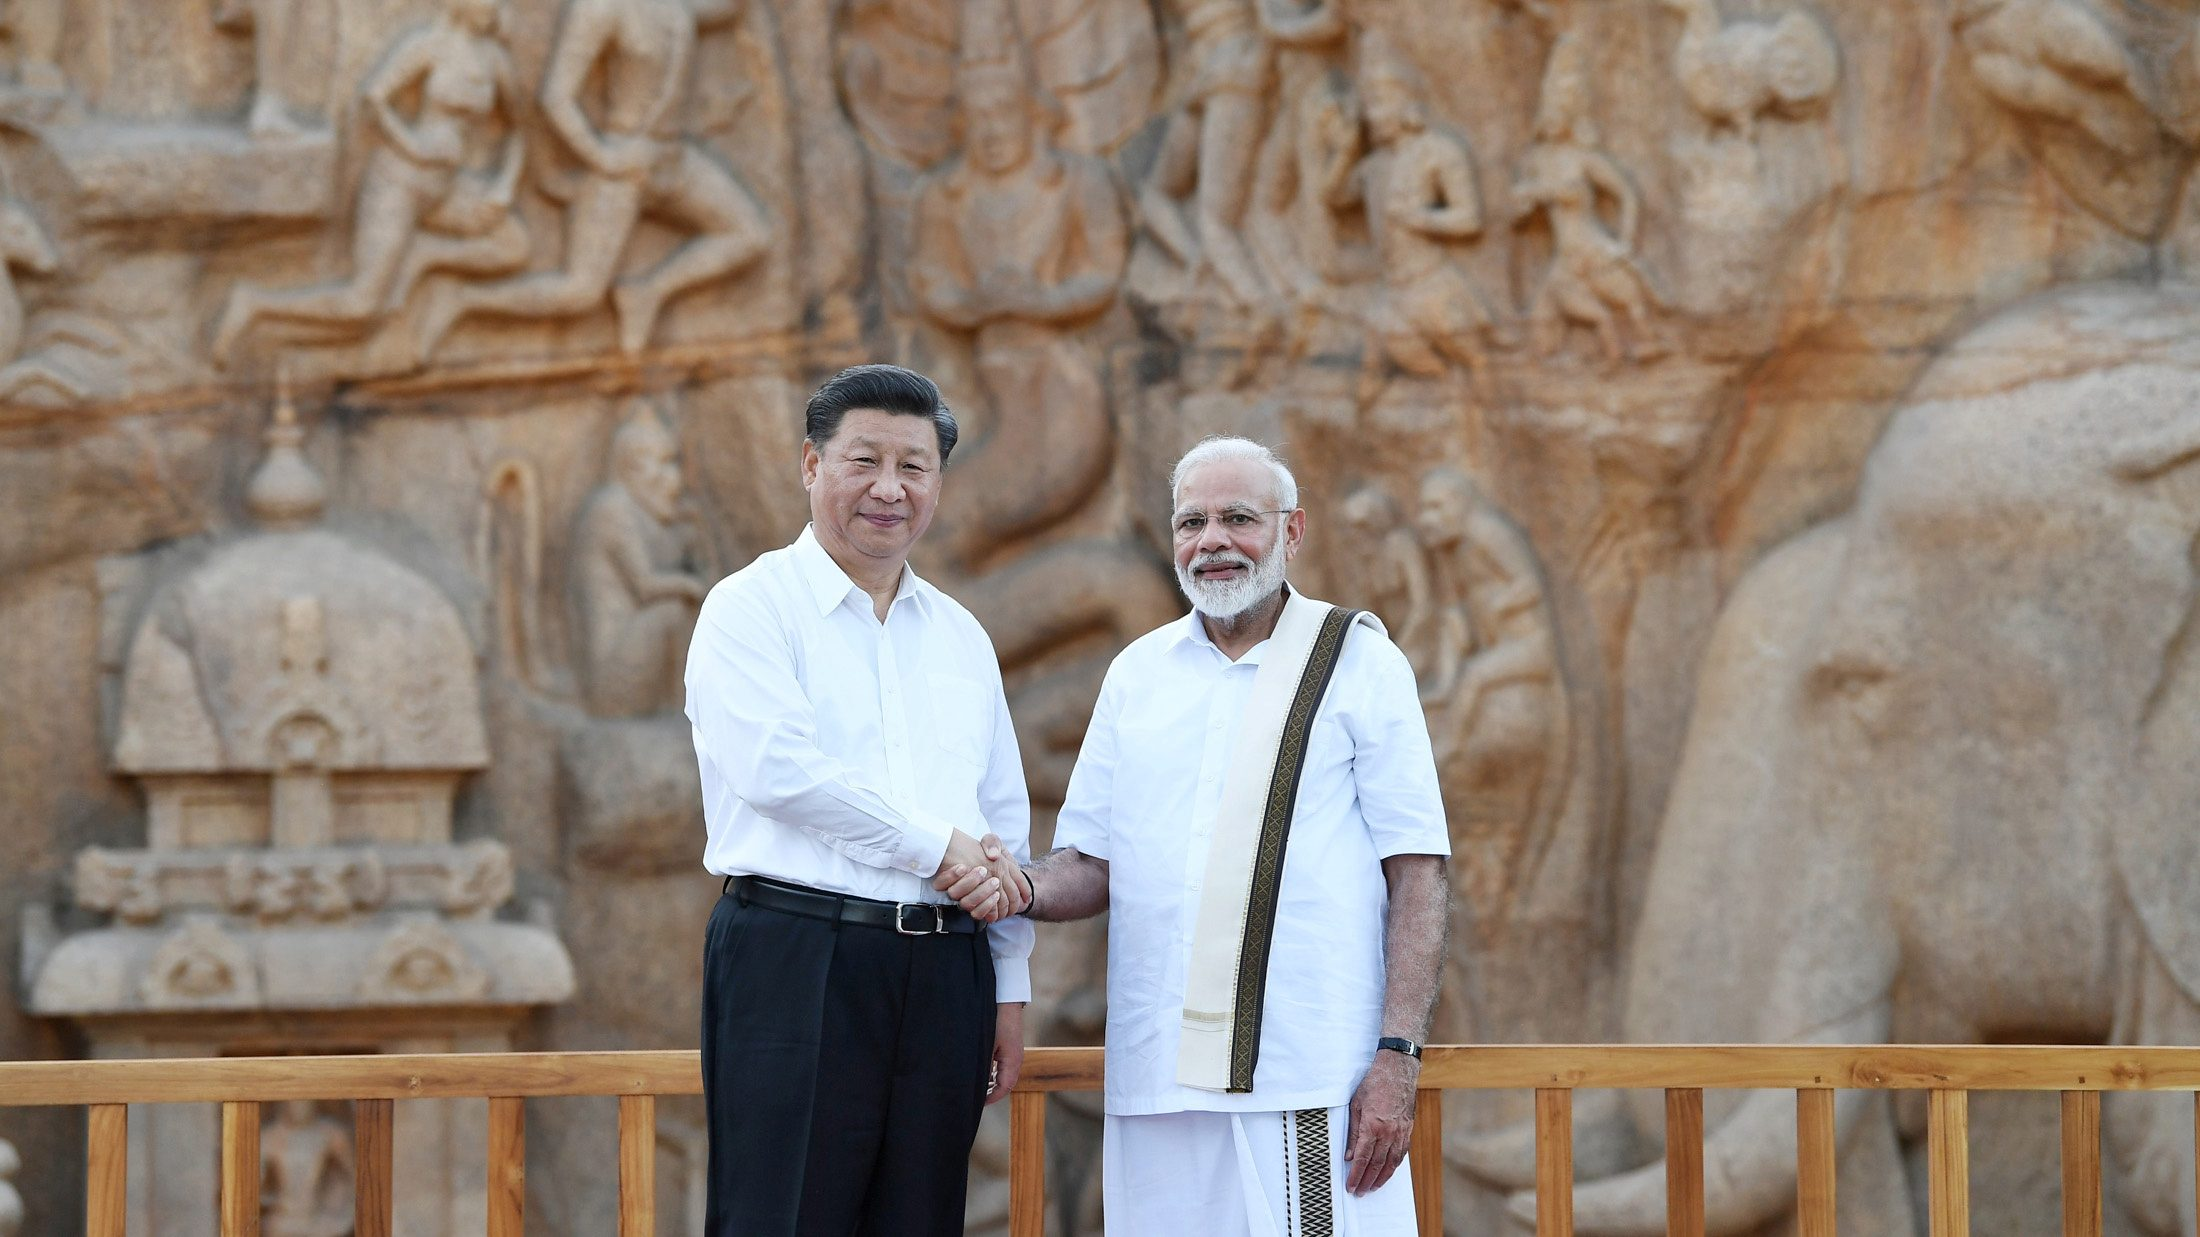 China's President Xi Jinping shakes hand with India's Prime Minister Narendra Modi during their visit to Arjuna's Penance in Mamallapuram